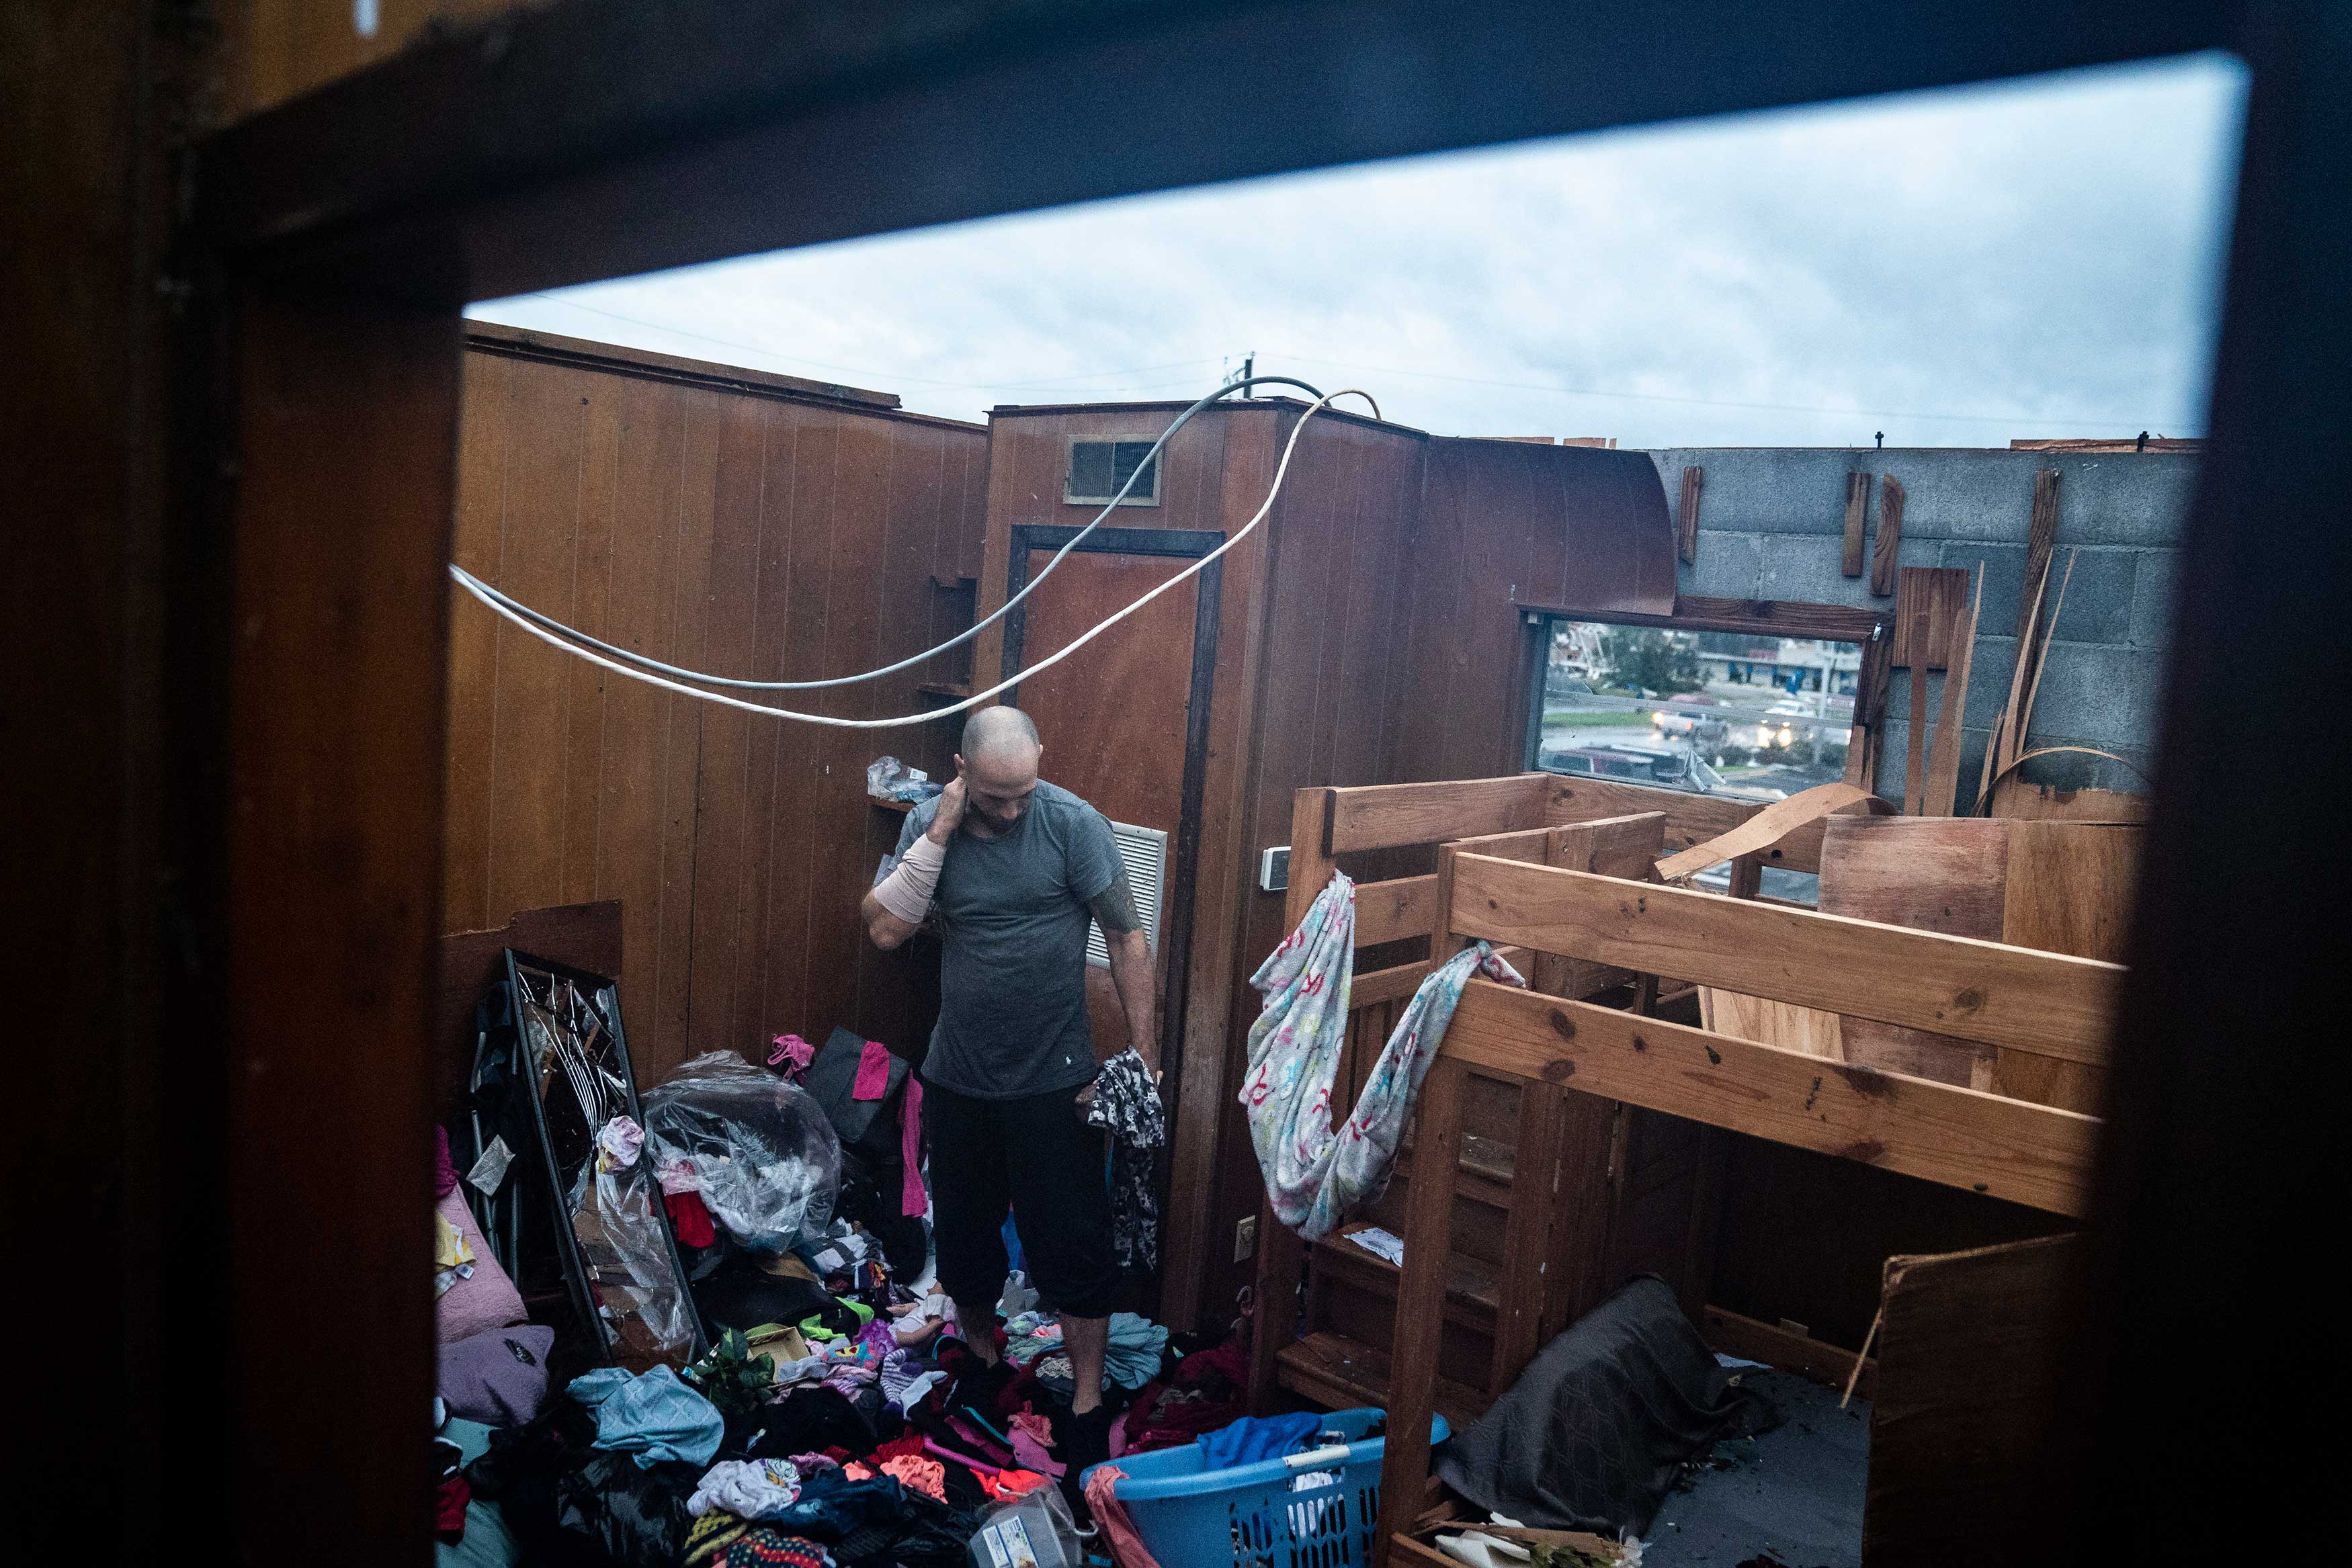 Jason Phipps looks through his families roofless apartment after category 4 Hurricane Michael made land fall along the Florida panhandle, on Oct. 10, 2018 in Panama City, Fla.